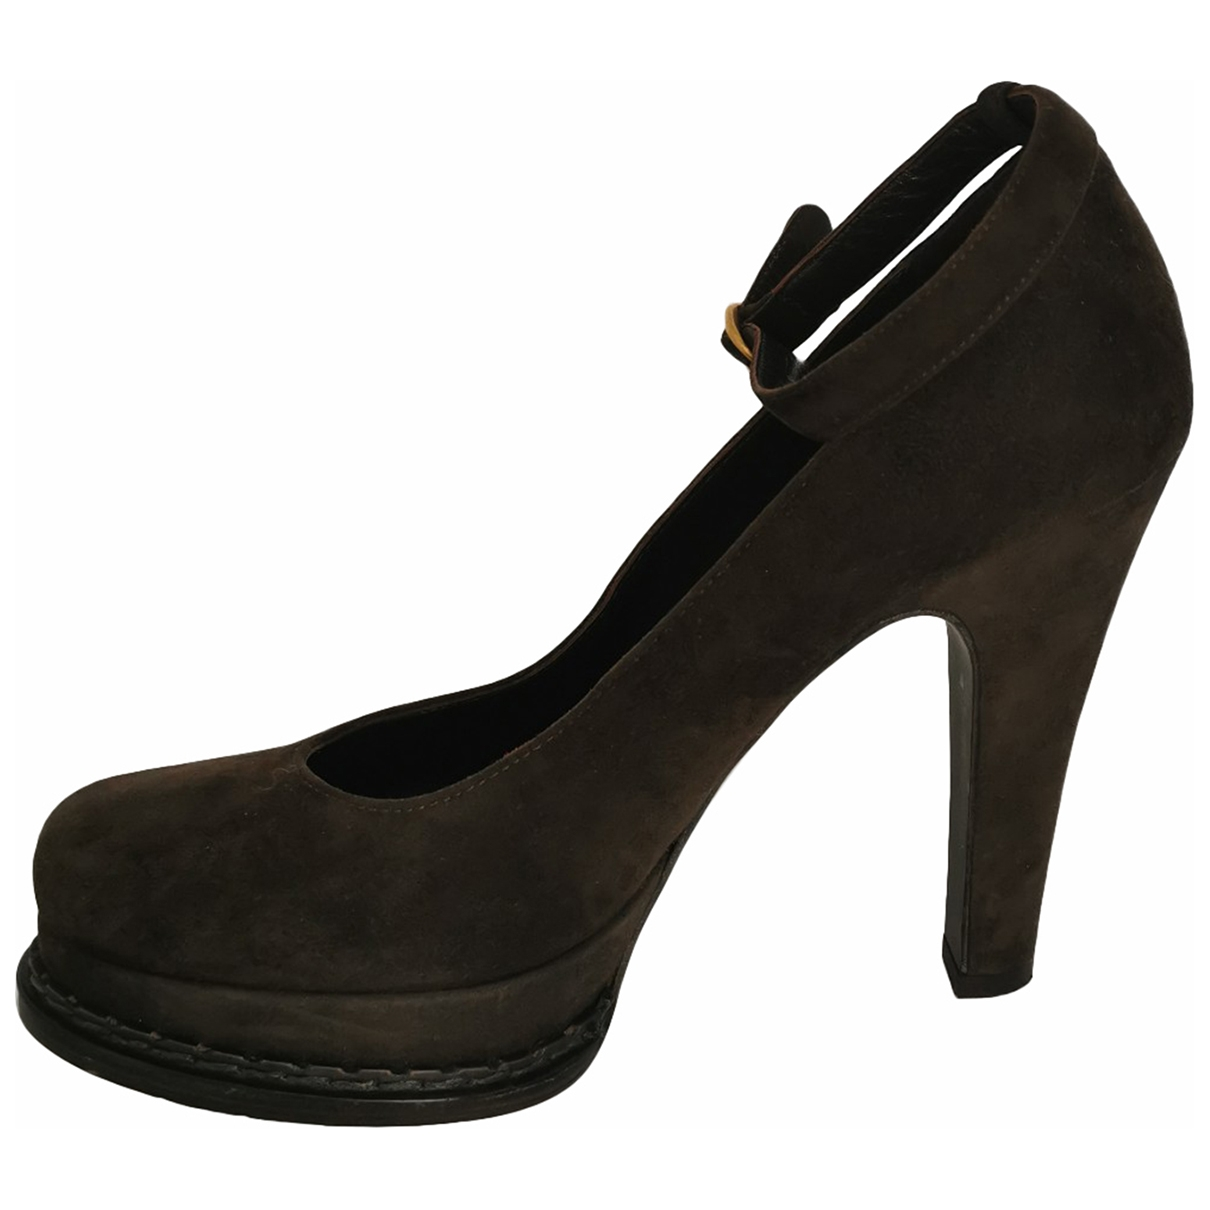 Yves Saint Laurent \N Brown Suede Heels for Women 38 EU